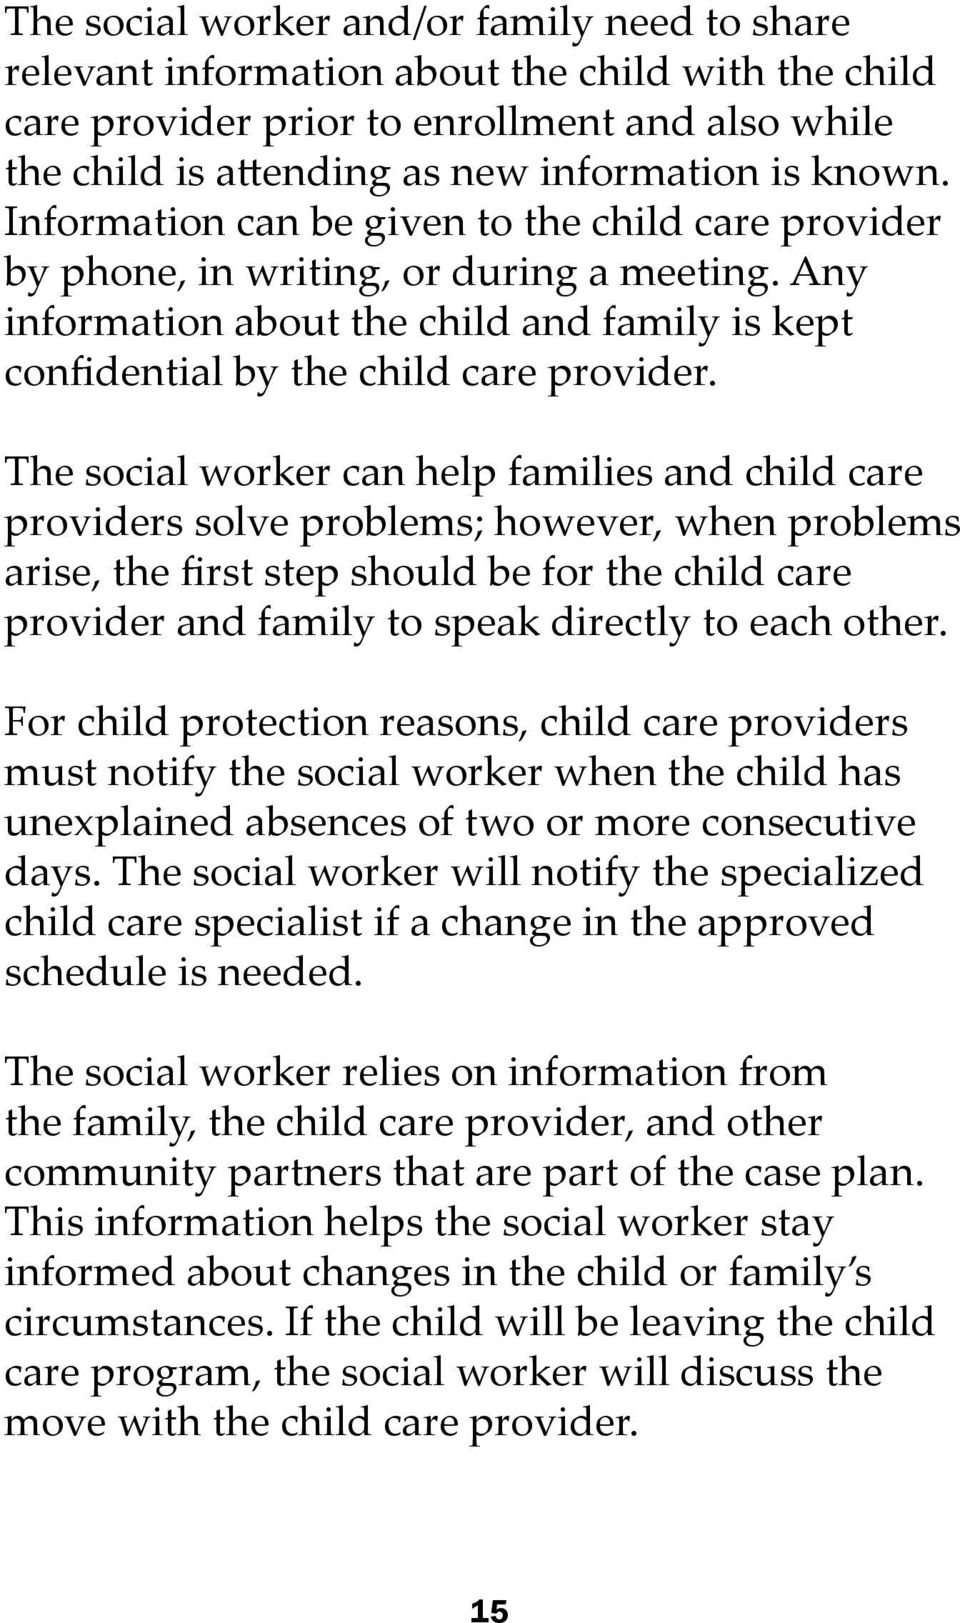 The social worker can help families and child care providers solve problems; however, when problems arise, the first step should be for the child care provider and family to speak directly to each